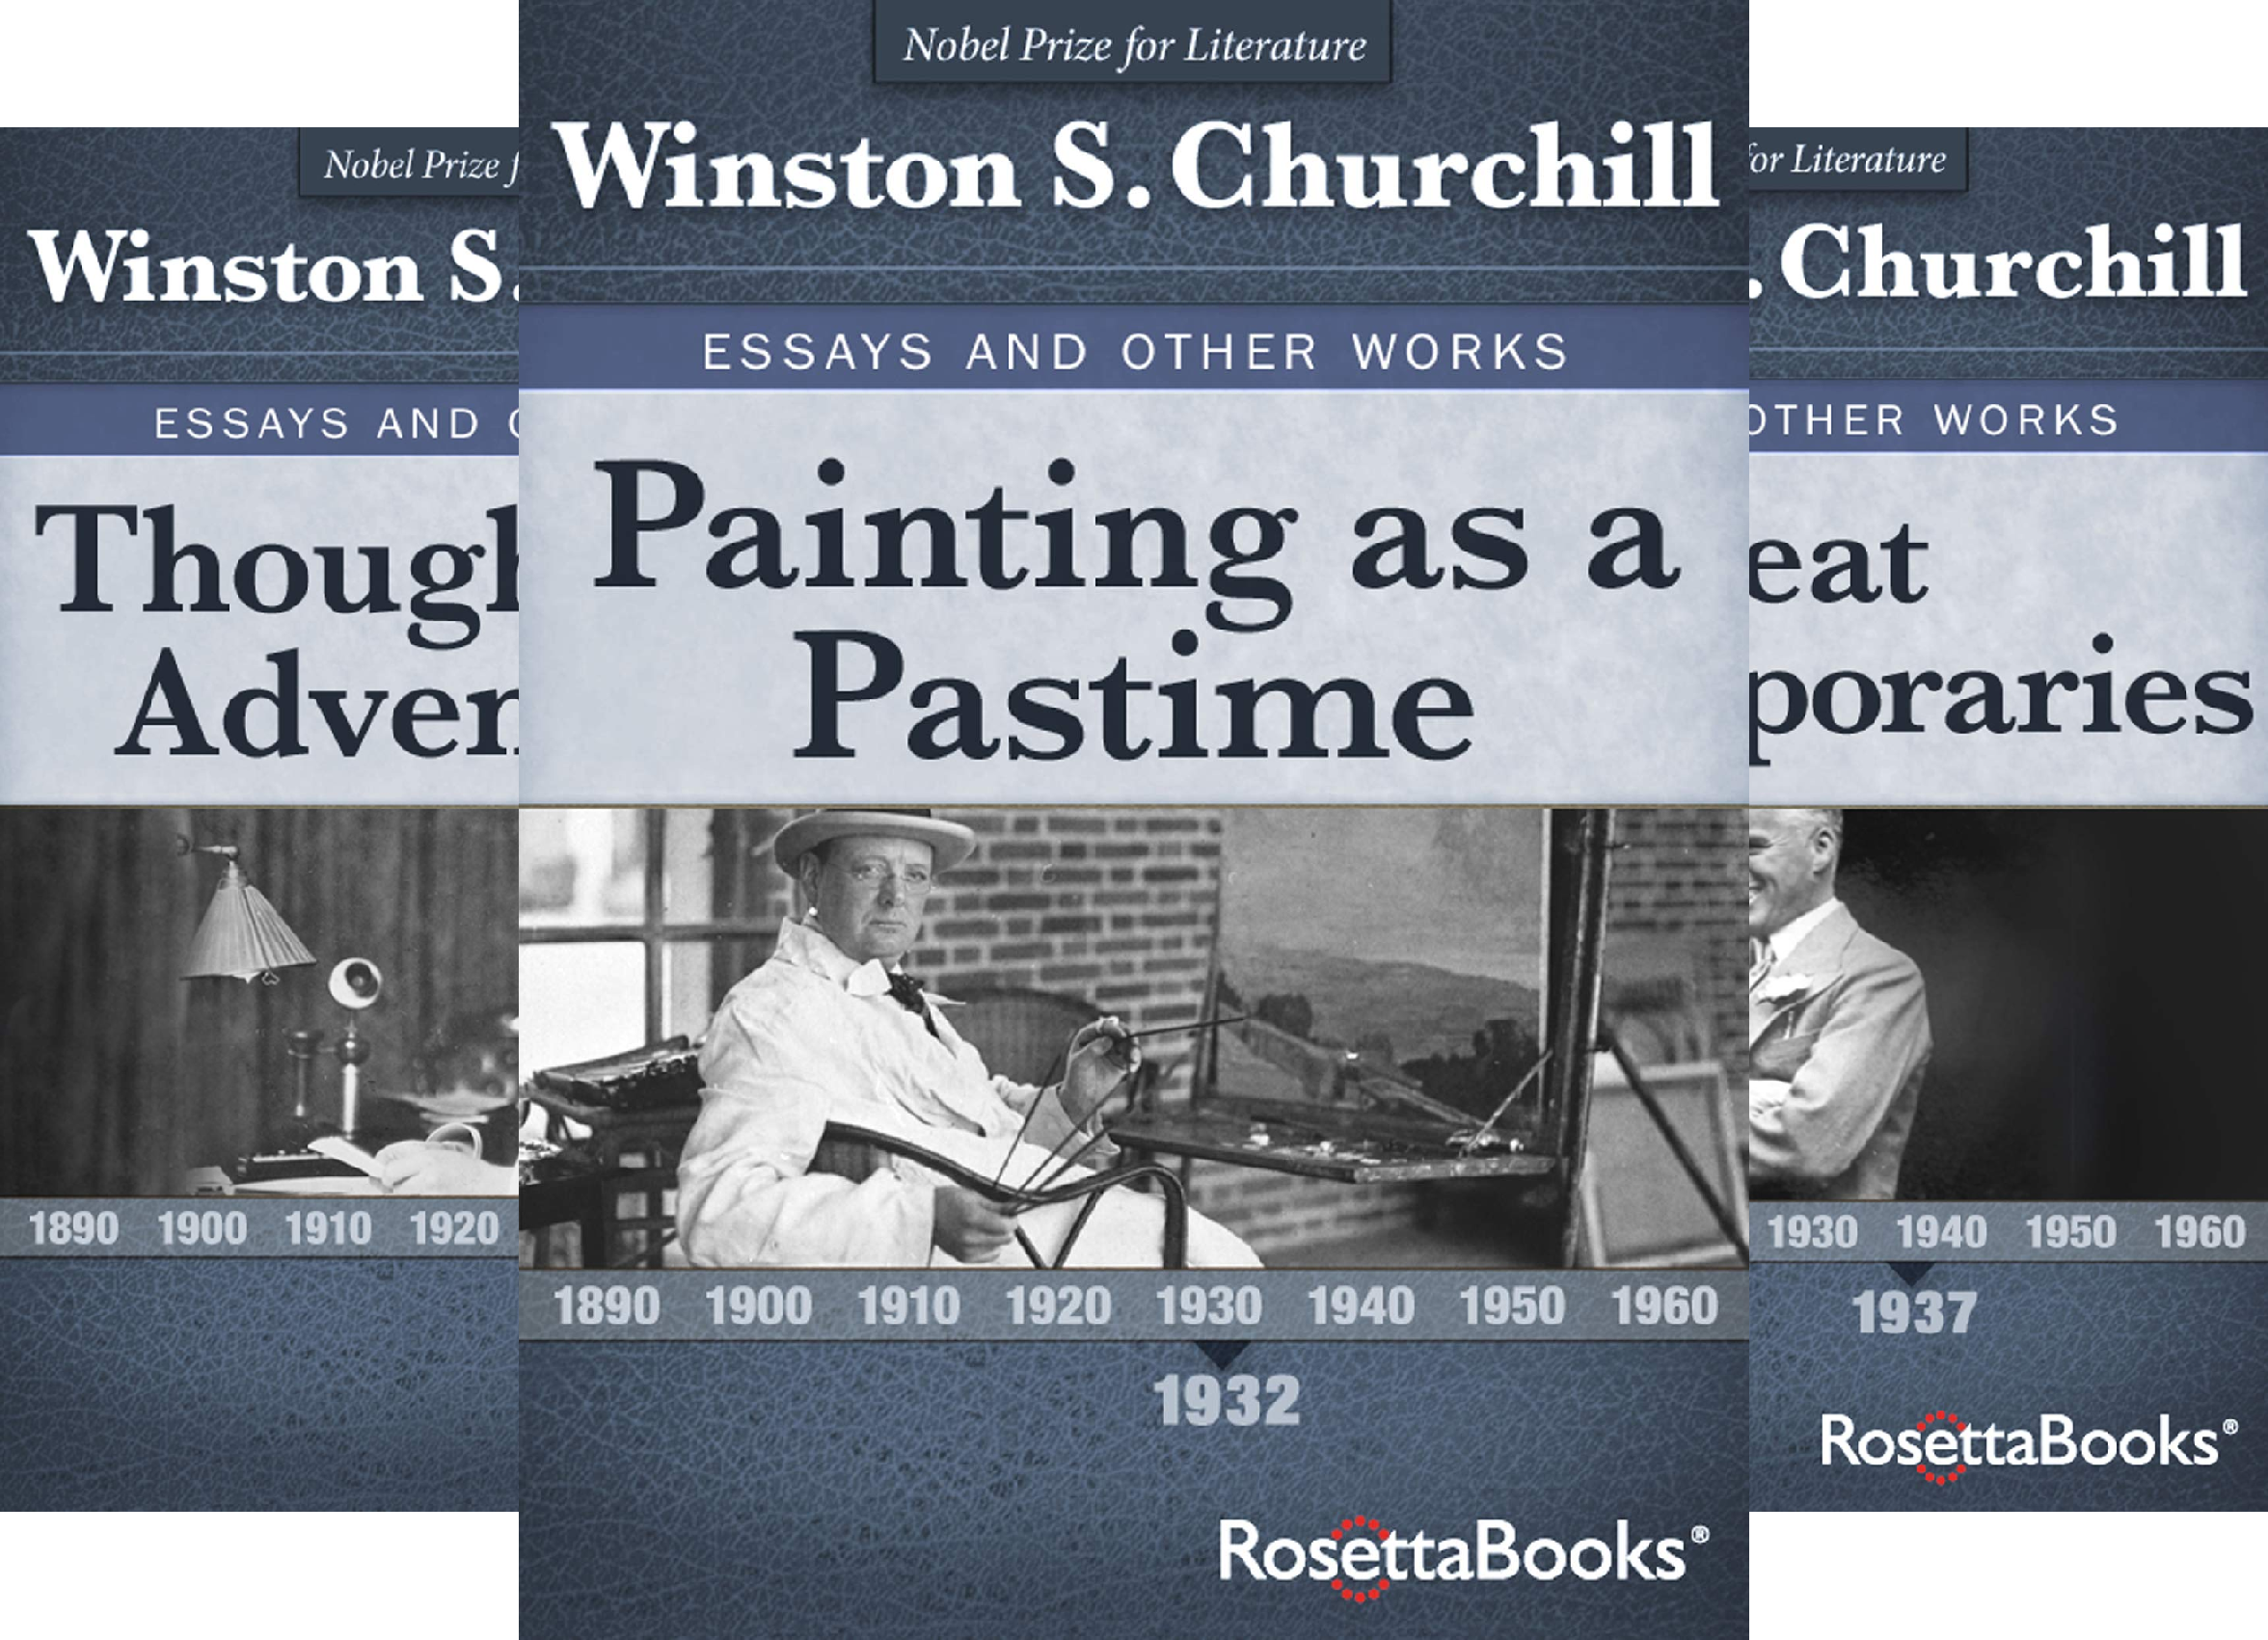 Winston S. Churchill Essays and Other Works (5 Book Series)